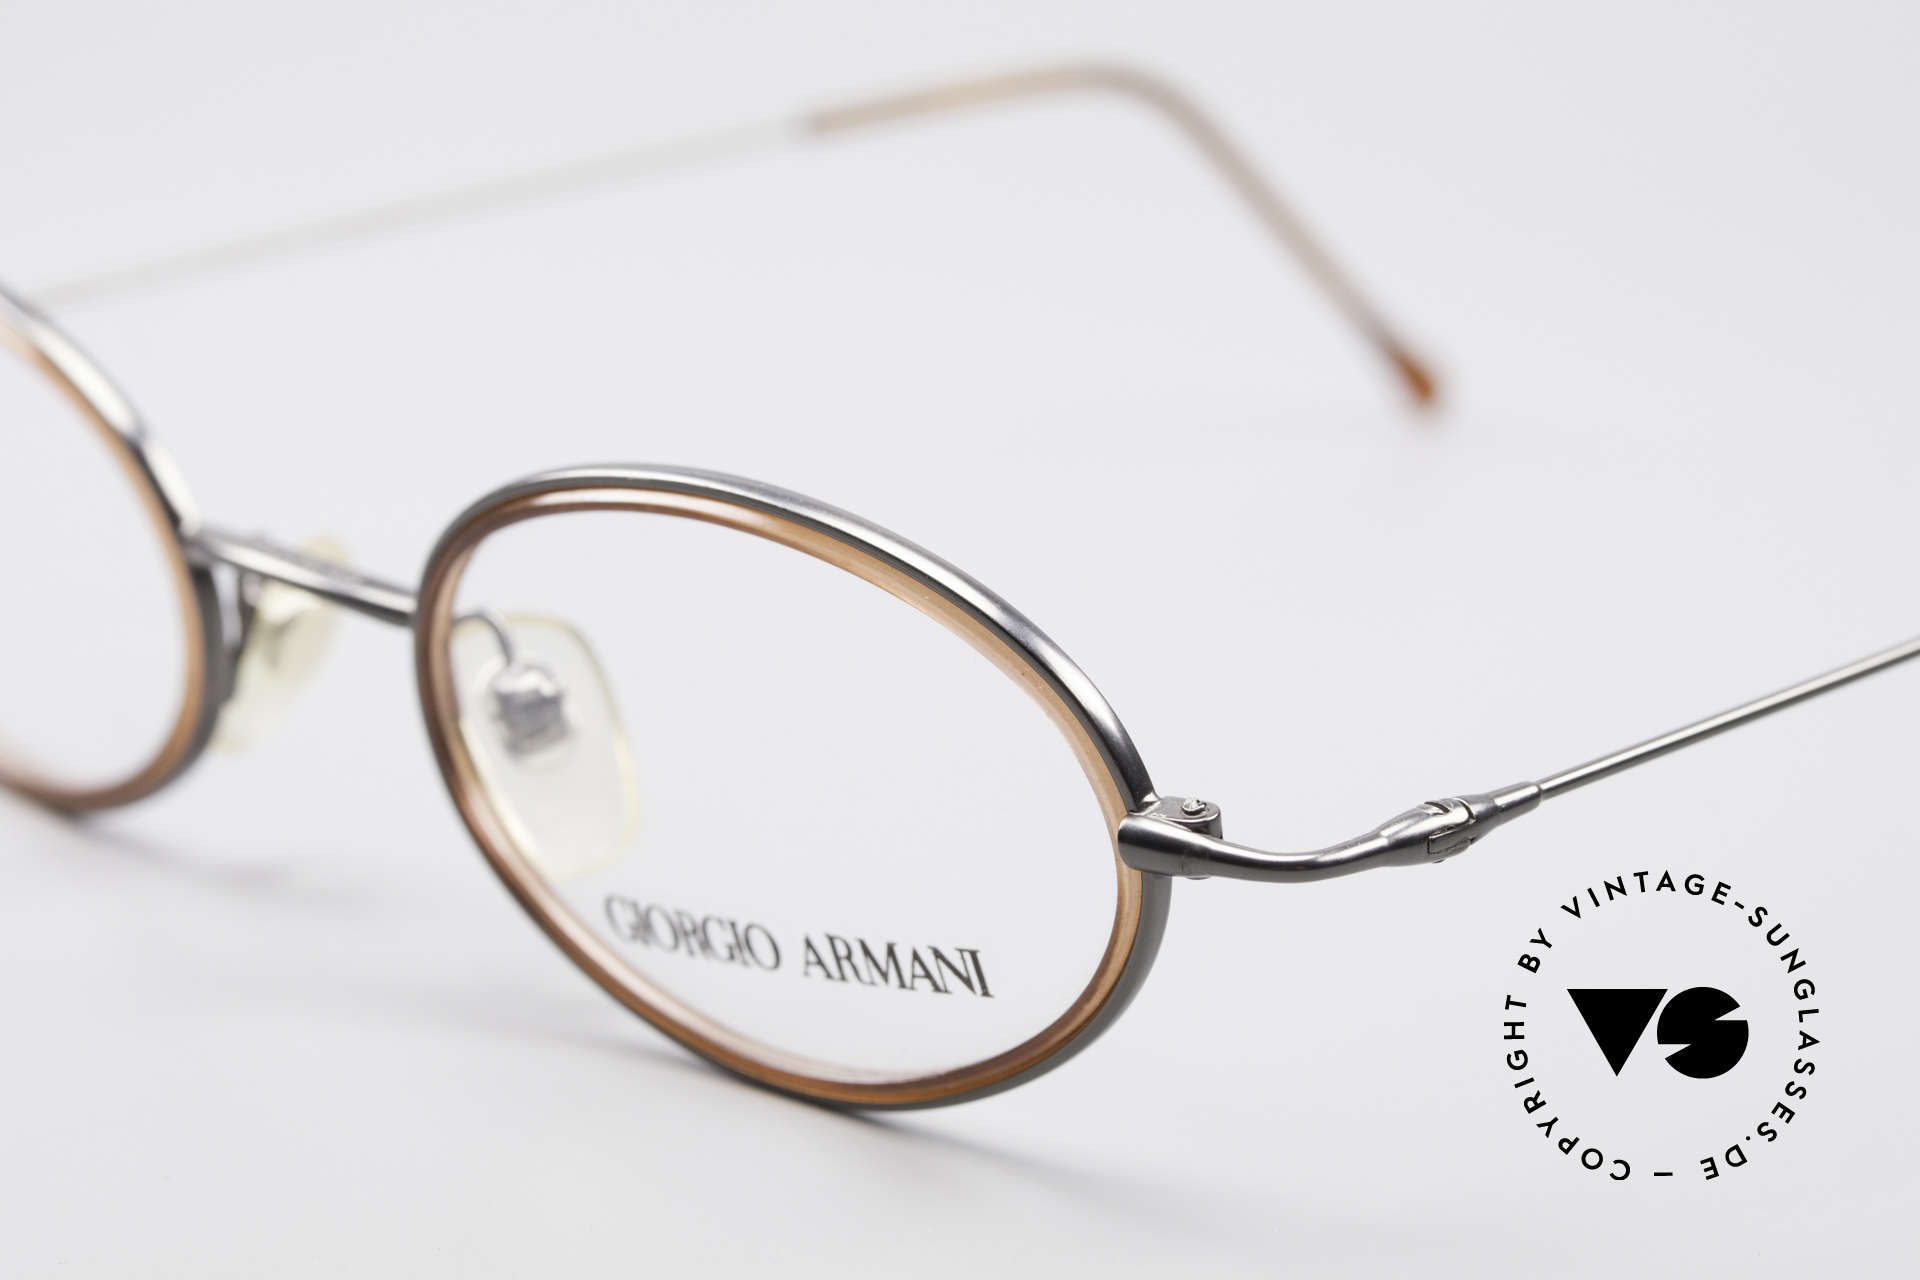 Giorgio Armani 1012 Oval Vintage Unisex Frame, never worn (like all our 1980's designer classics), Made for Men and Women